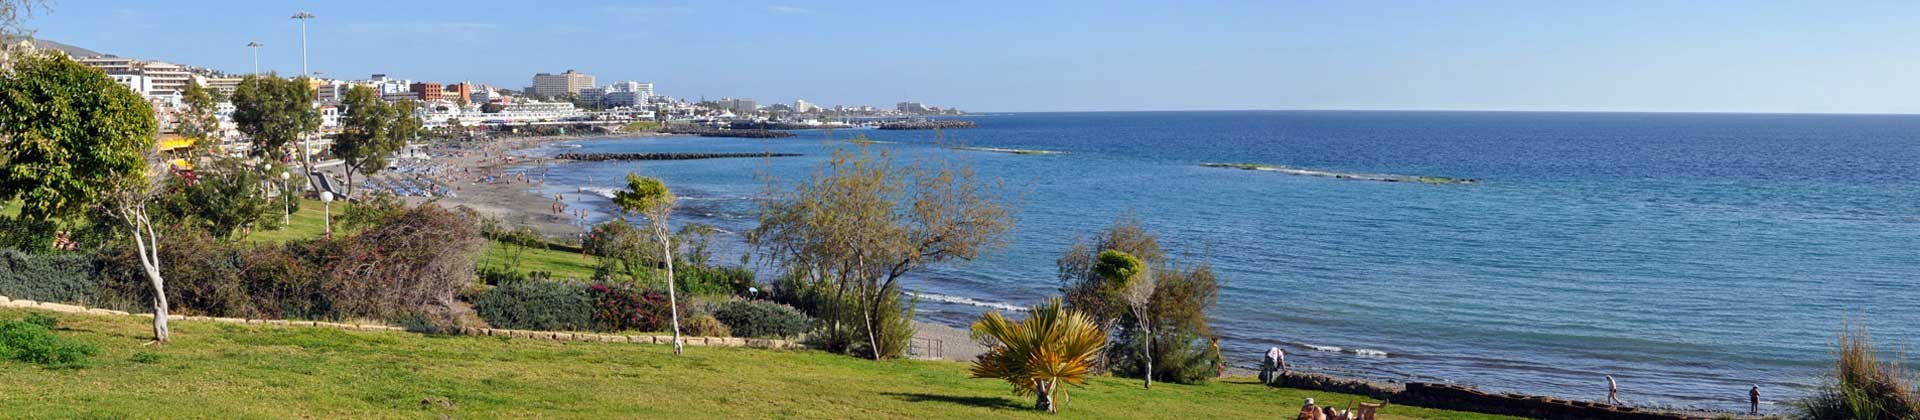 https://www.goodmorningtenerife.com/wp-content/uploads/2014/08/02_slide_landscape_GM_Tenerife-1920x420.jpg